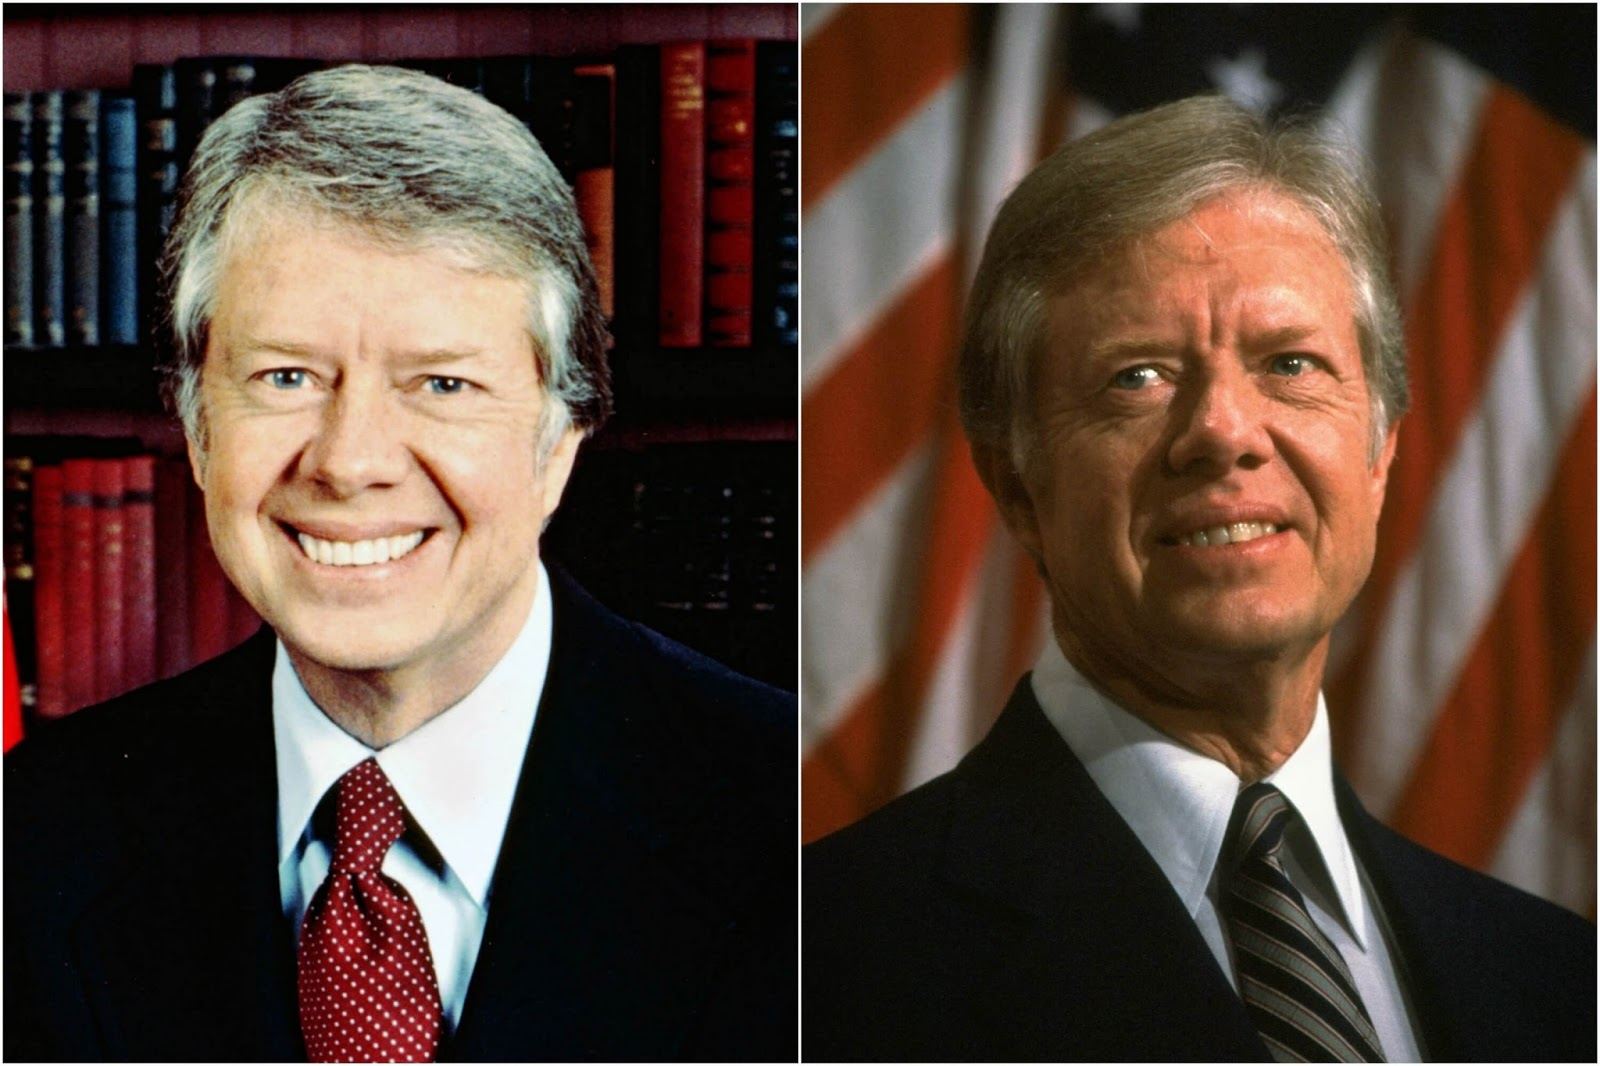 15 Before And After Photos Of US Presidents Depict How Their Job Transformed Them - Jimmy Carter (1977-1981)